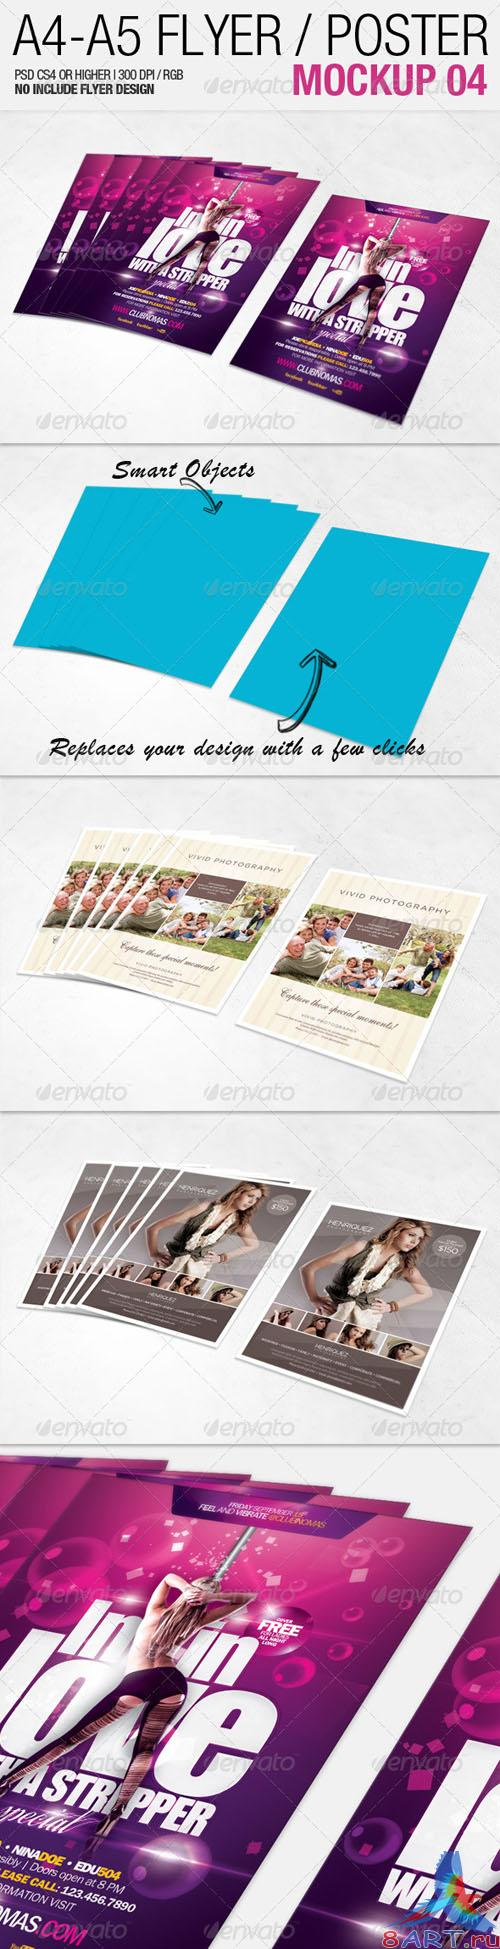 GraphicRiver A4 - A5 Flyer Mockup 04 - 2557645